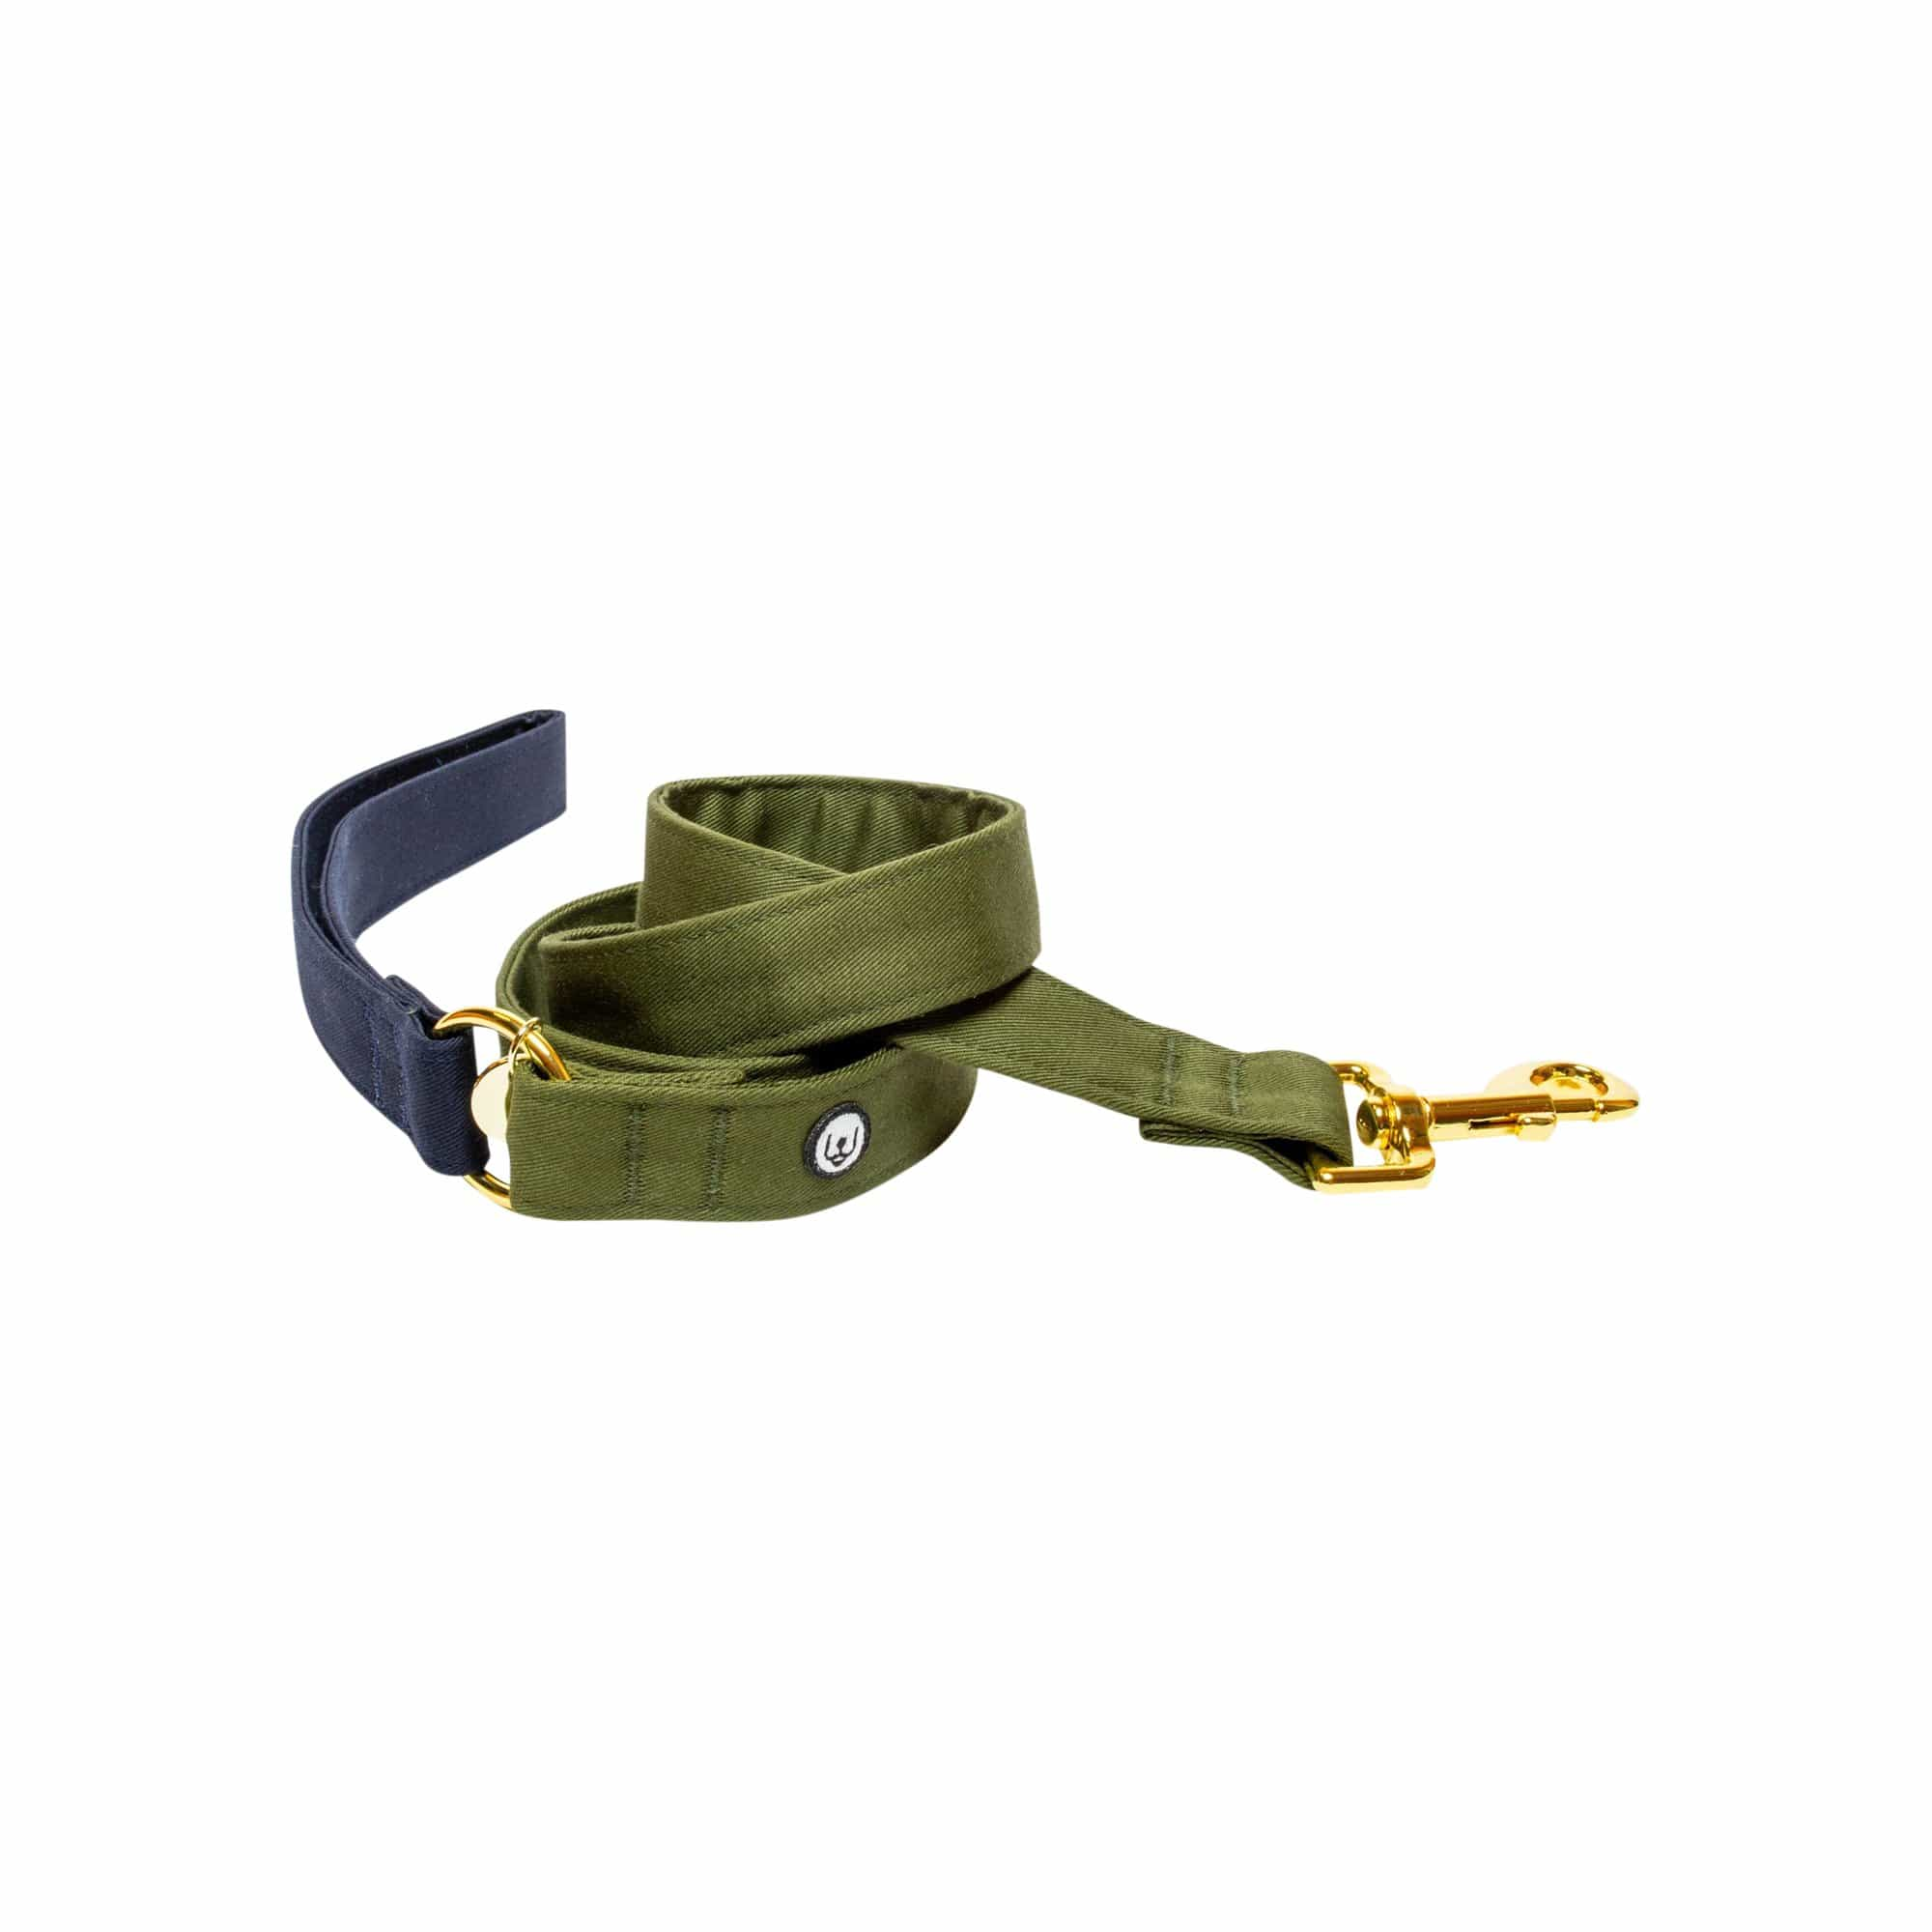 Eat Play Wag Leashes + Leads Navy-Olive Leash